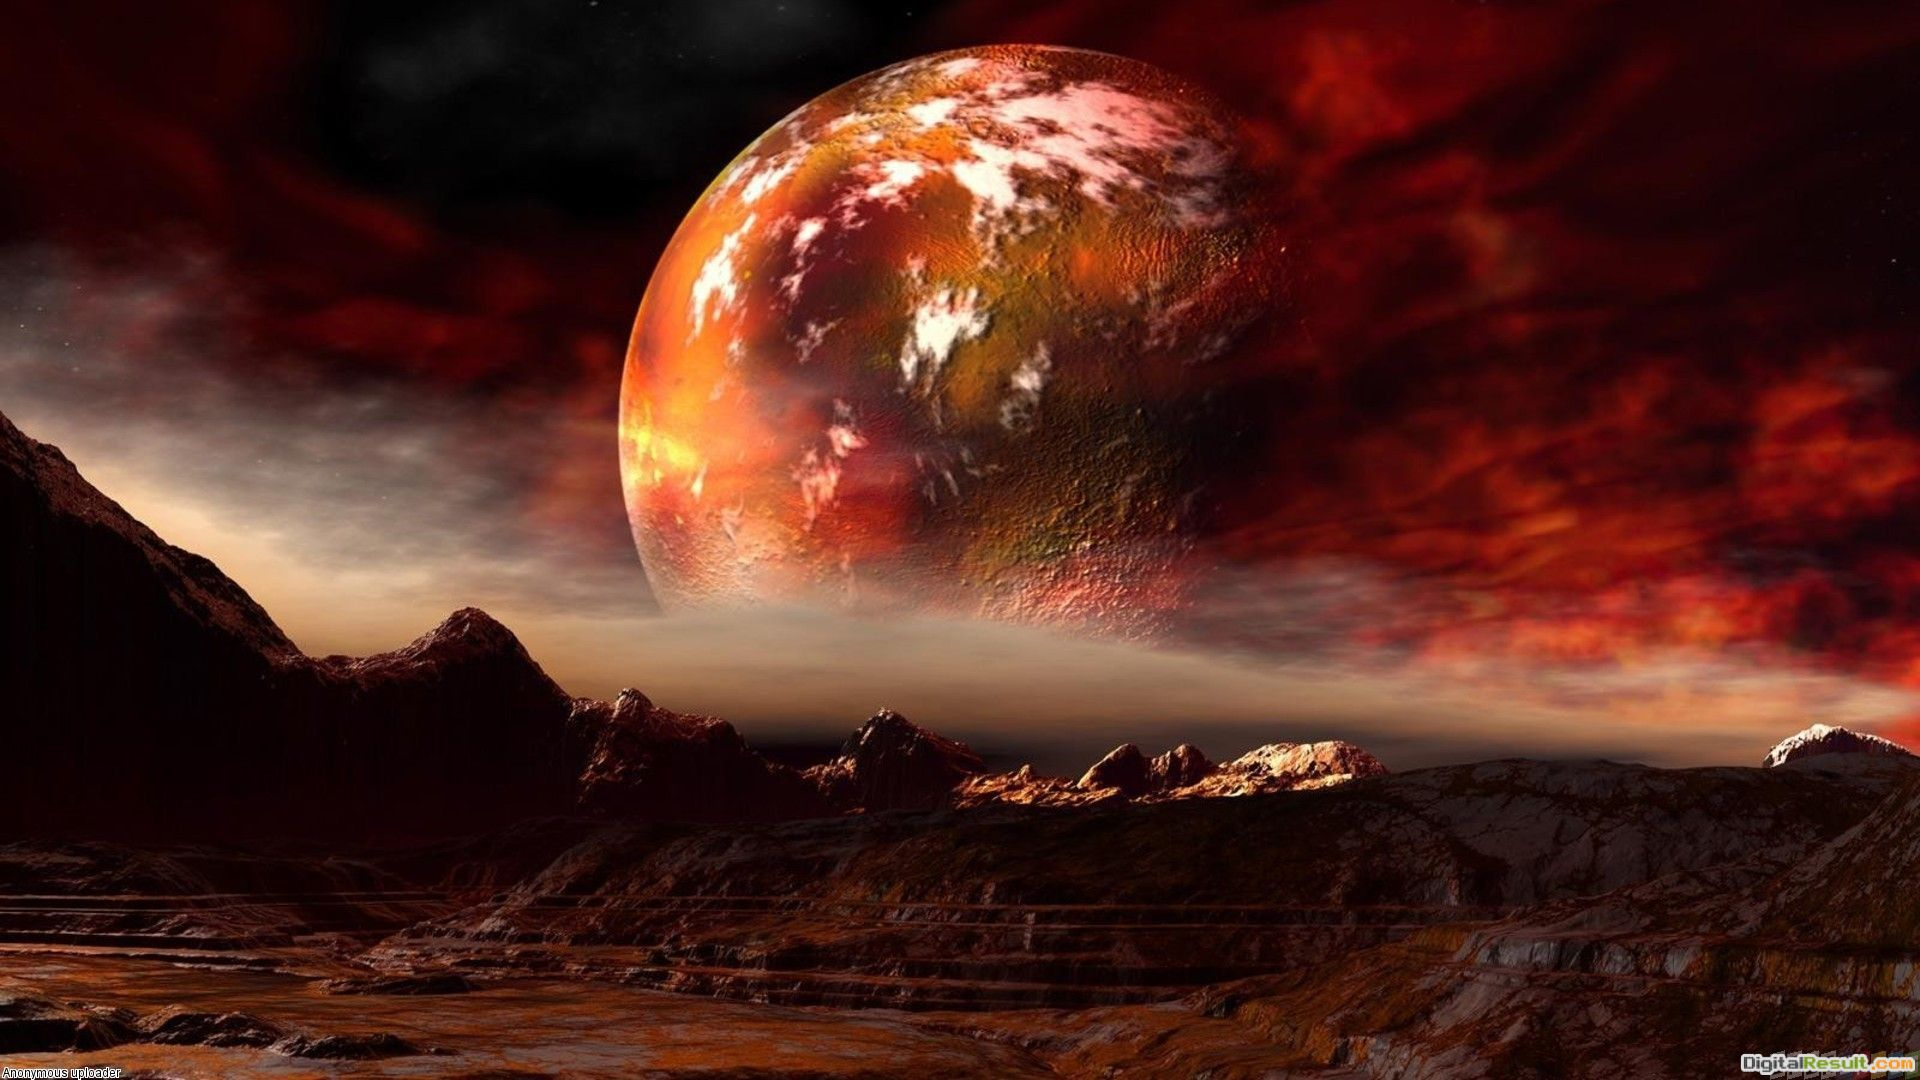 Red planet wallpaper #19970Open Walls 1186